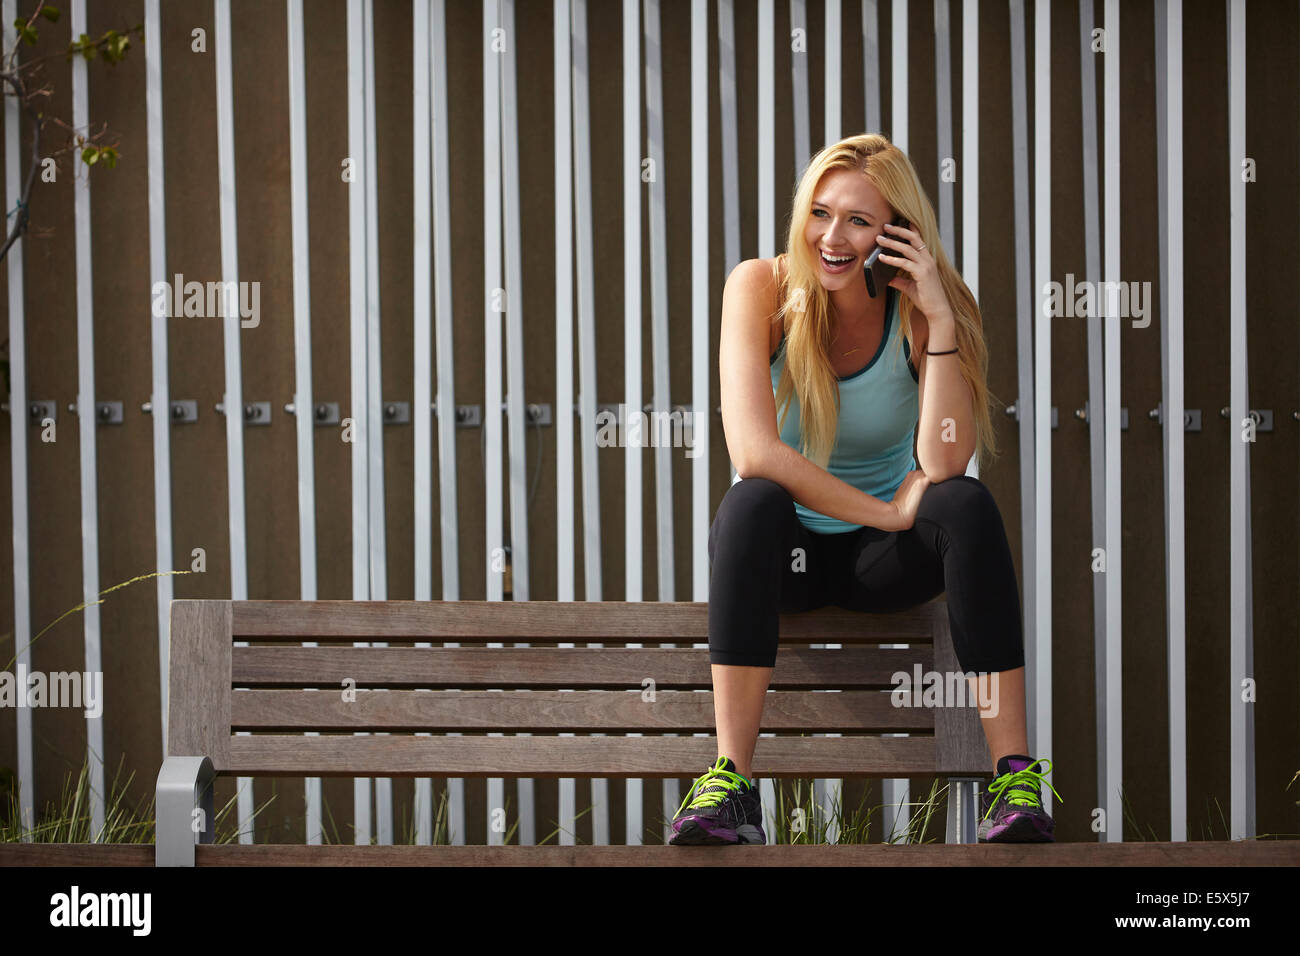 Woman chatting on smartphone on park bench - Stock Image